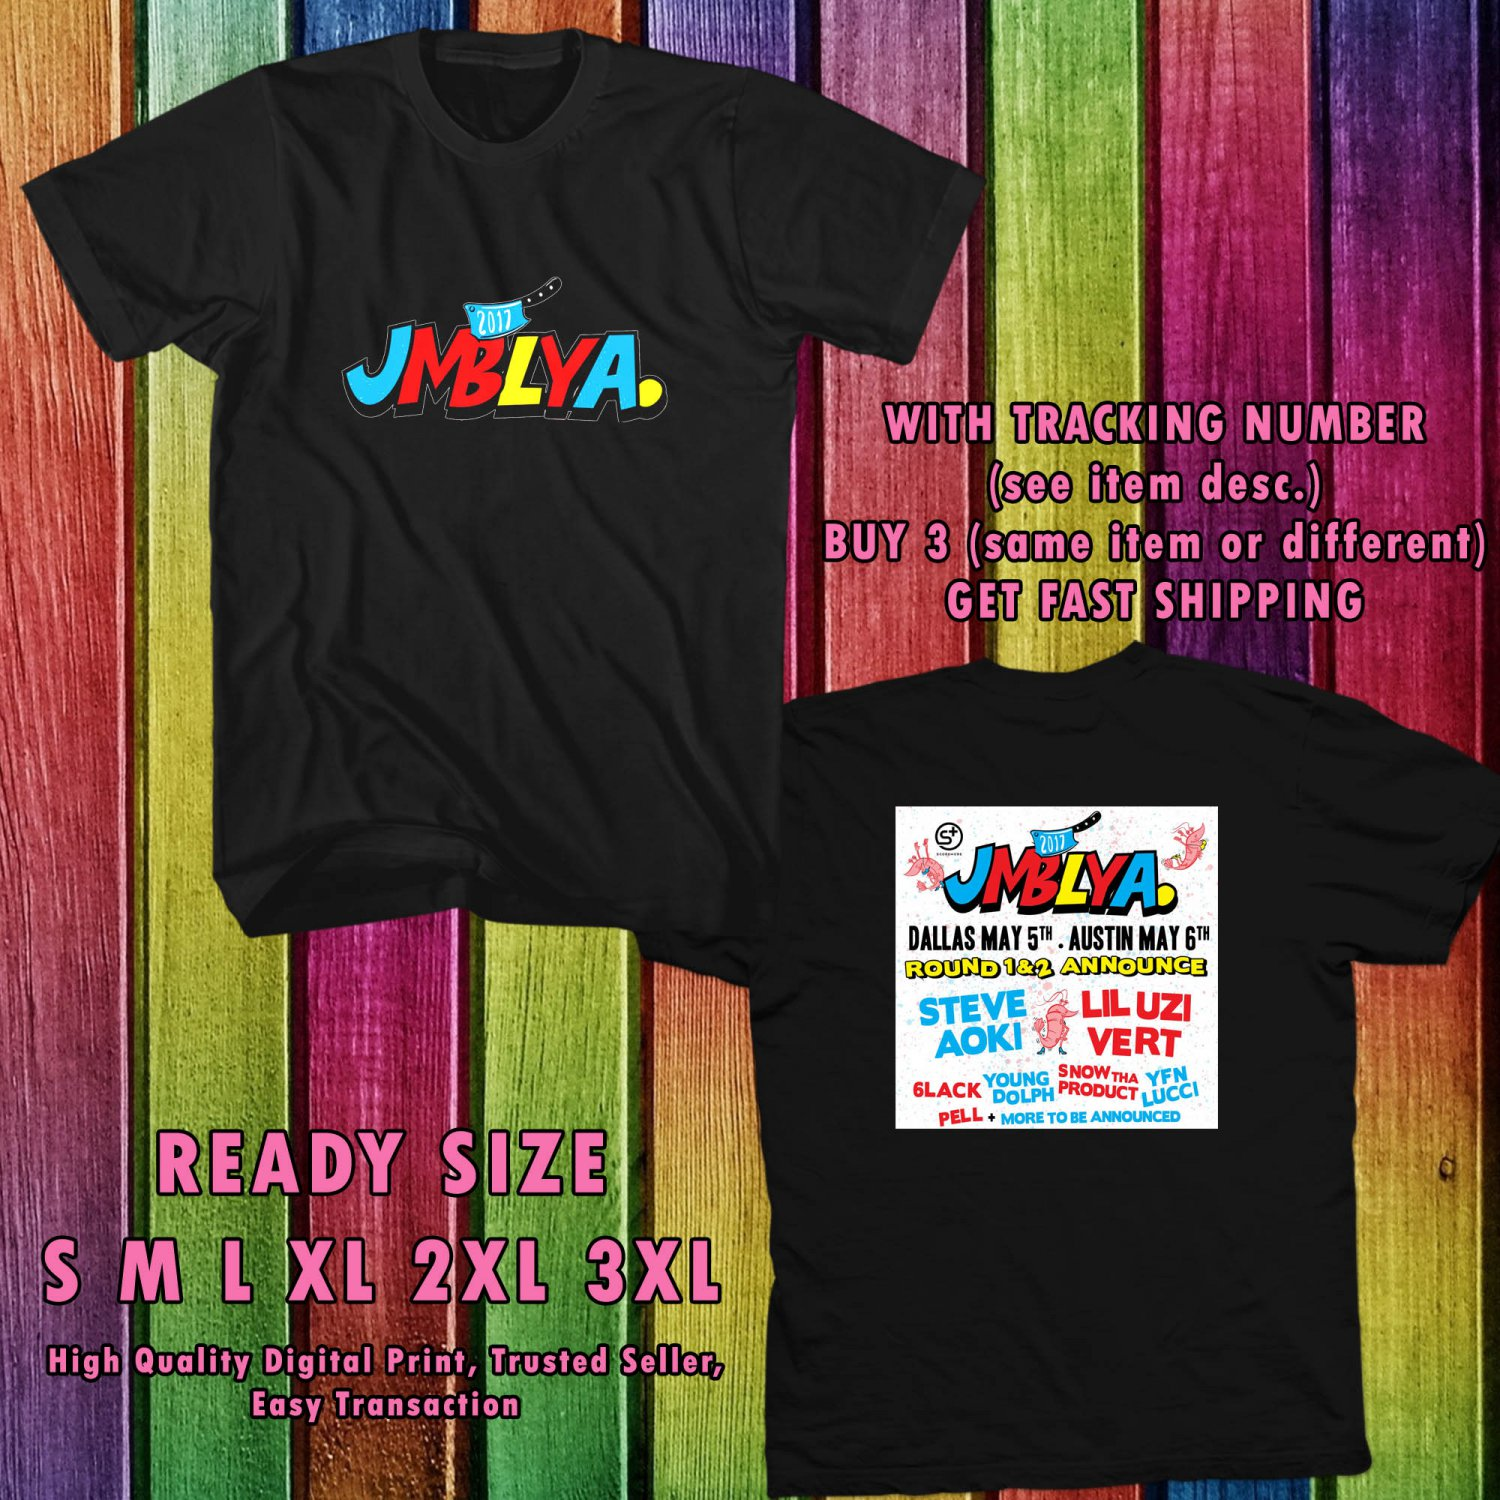 NEW JMBLYA FESTIVAL MAY 2017 black TEE 2 SIDE DMTR 887